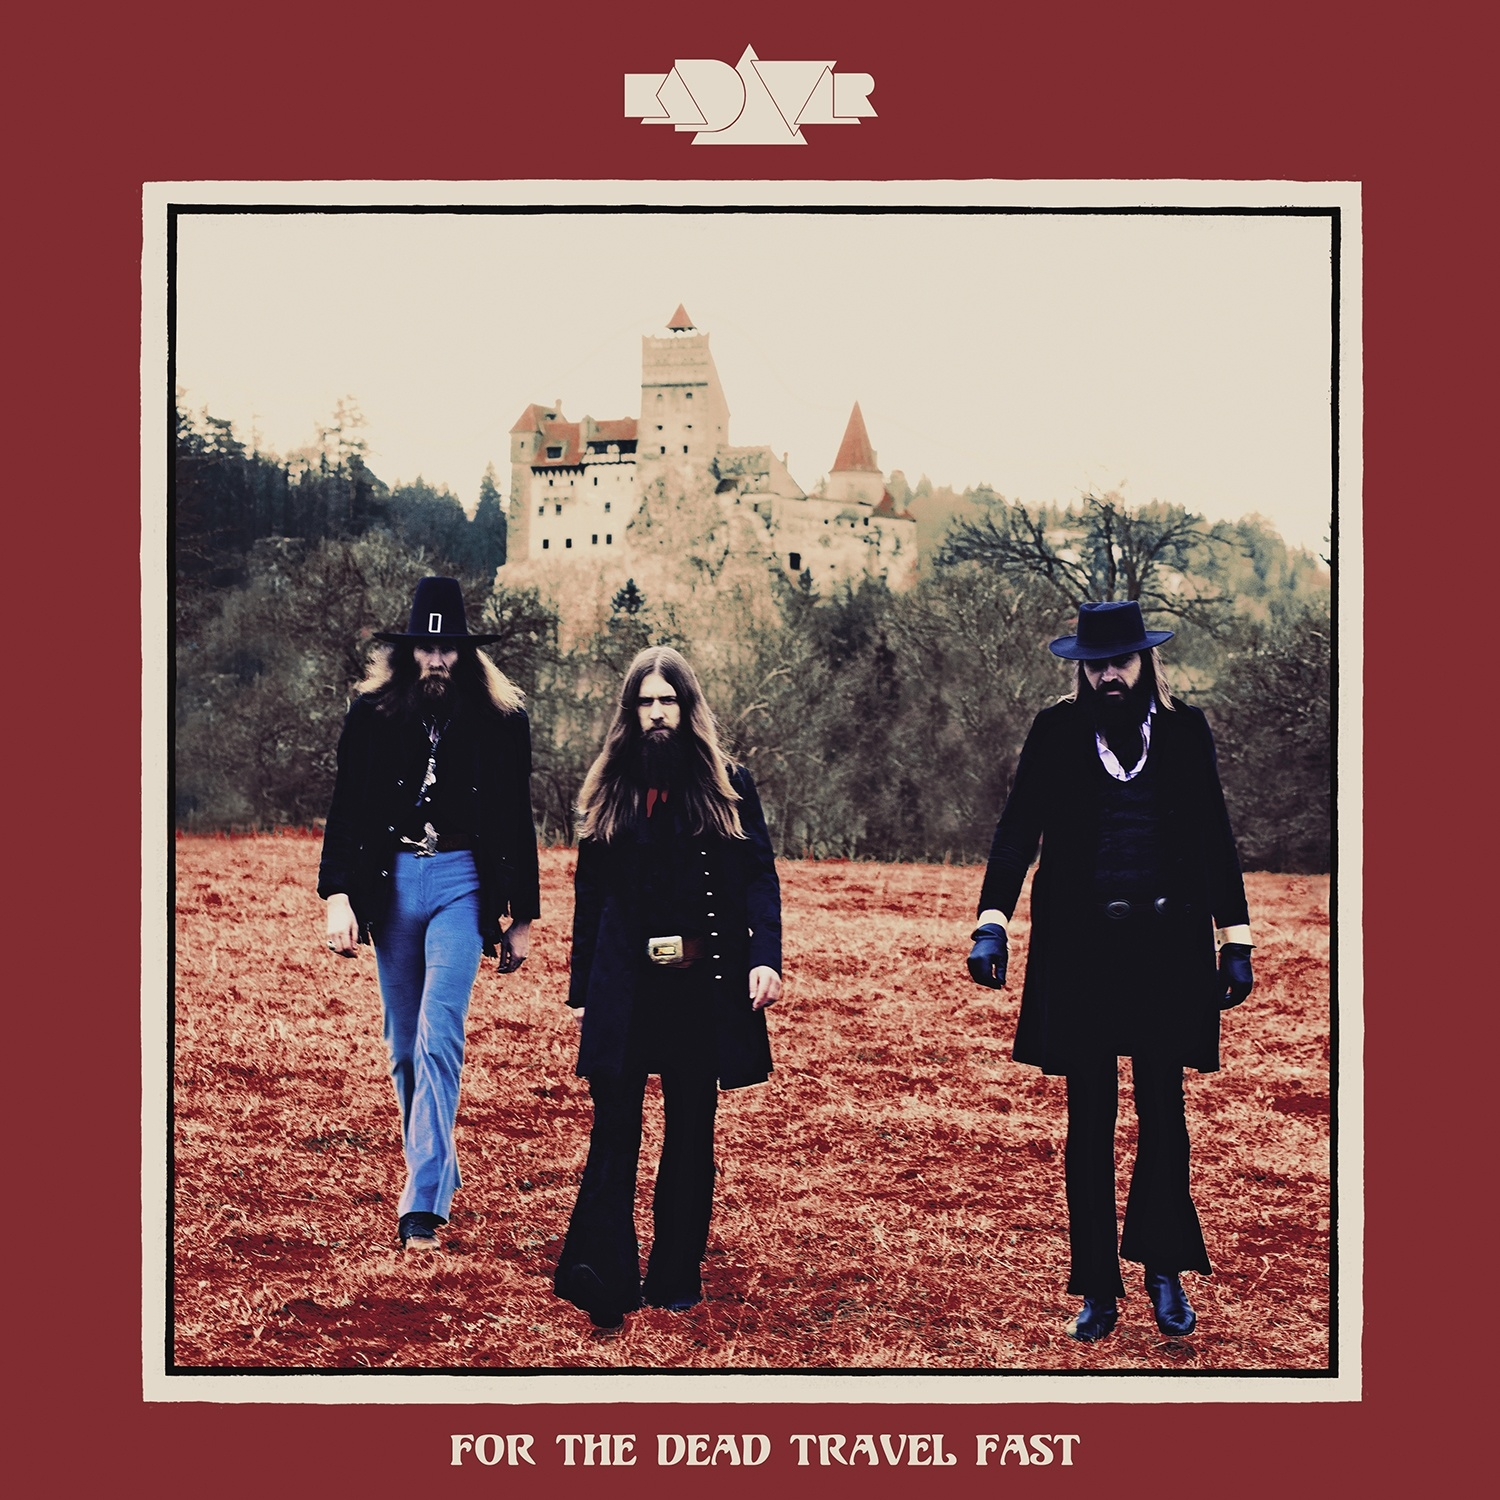 kadavar-for-the-dead-travel-fast